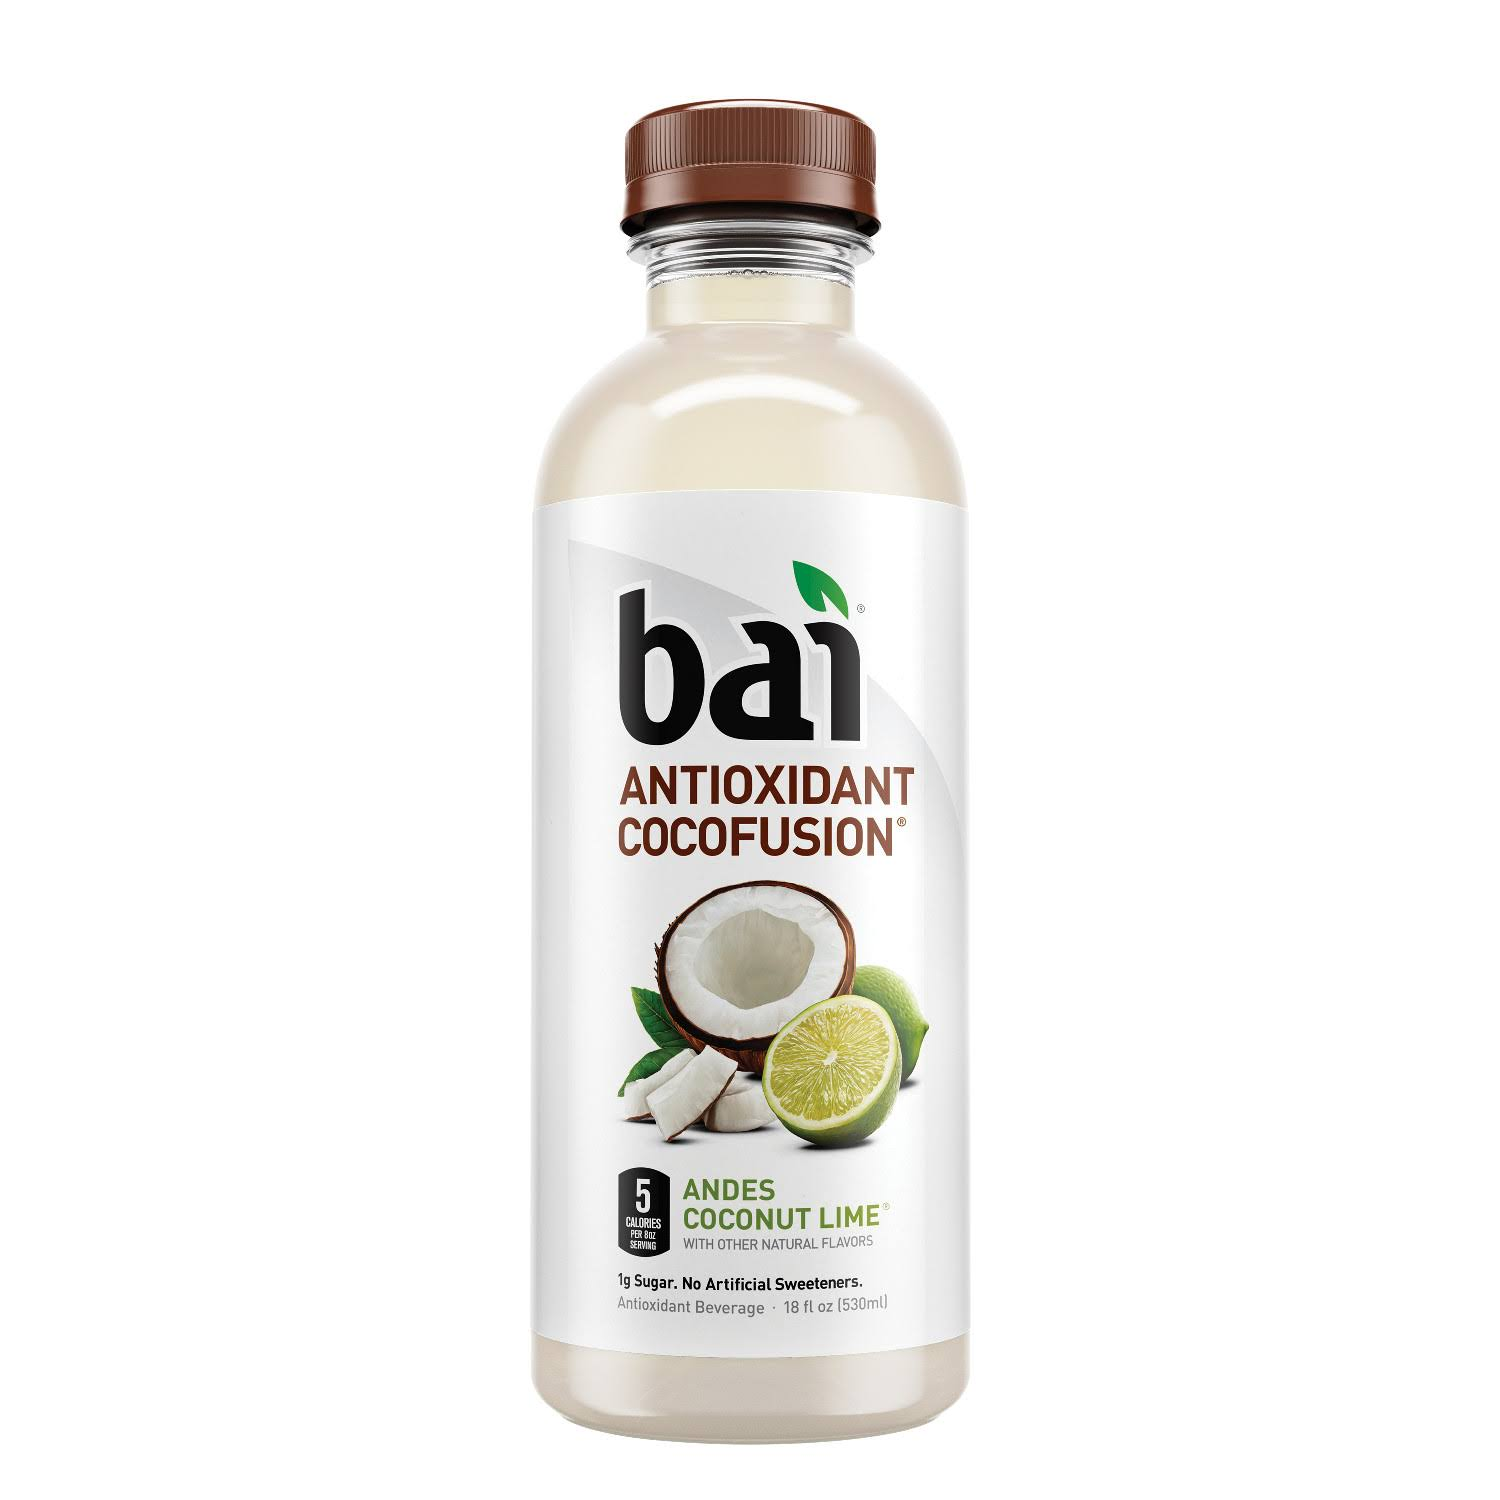 Bai Antioxidant Cocofusion Andes Coconut Lime Antioxidant Beverage